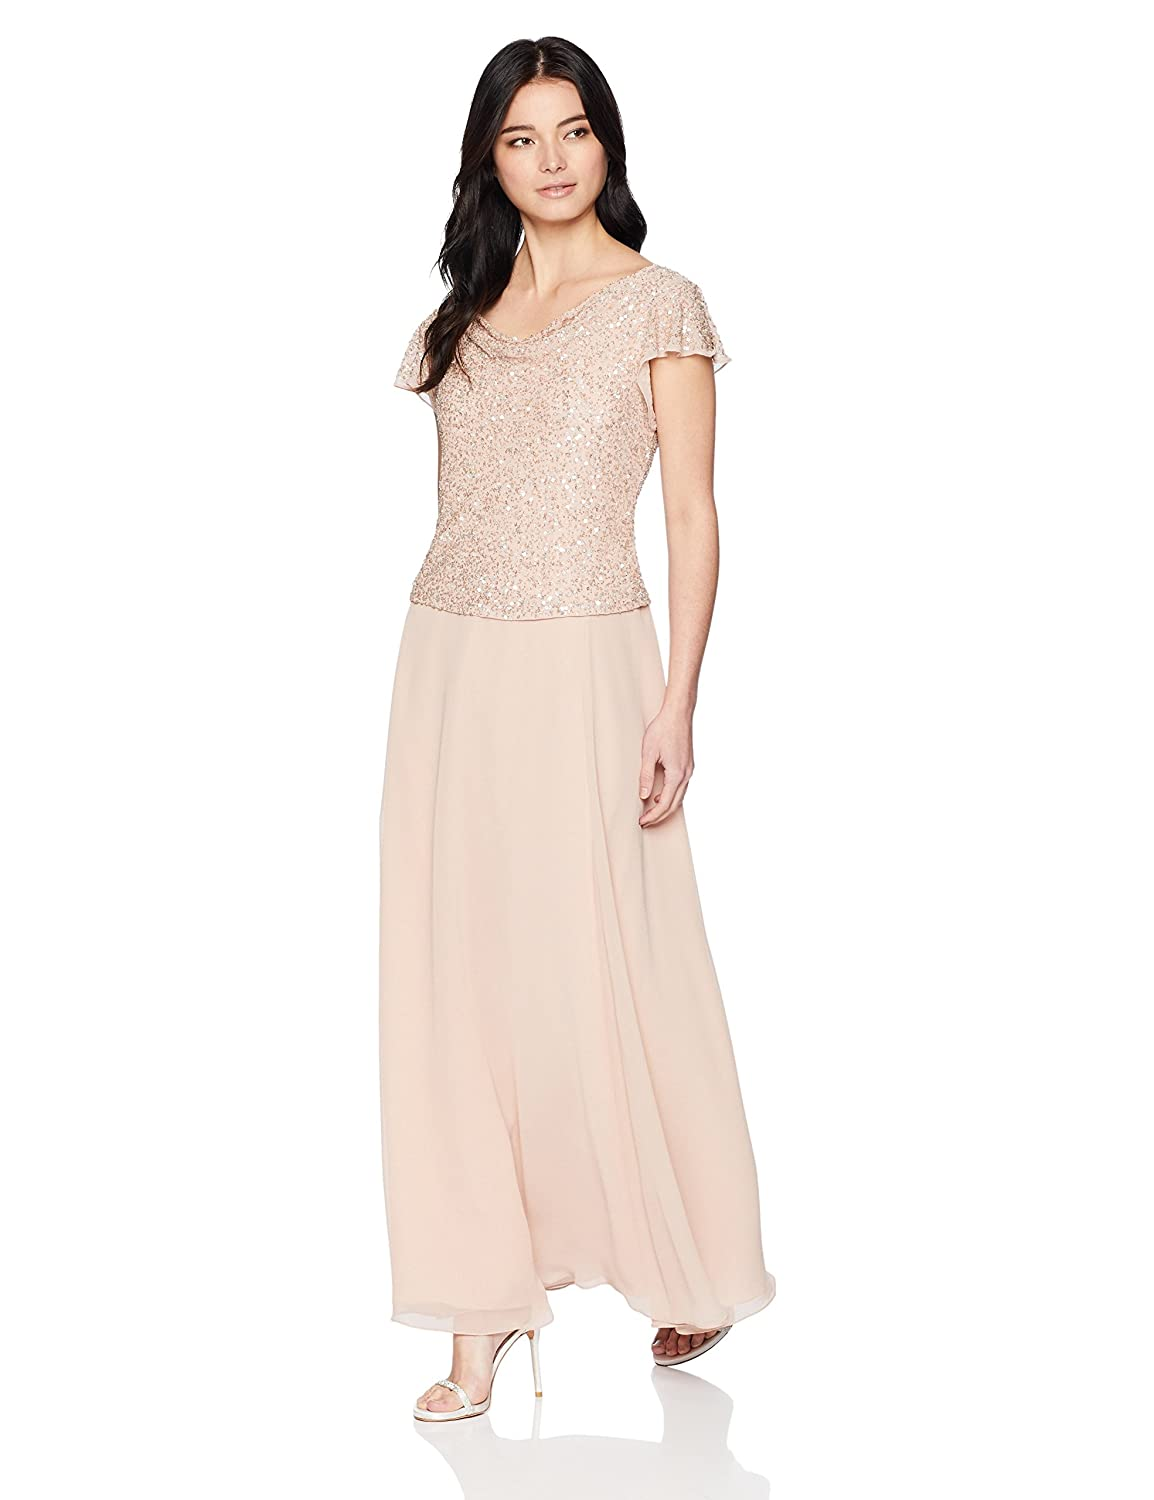 f4d445cc968 Top 10 wholesale Beaded Dresses With Sleeves - Chinabrands.com